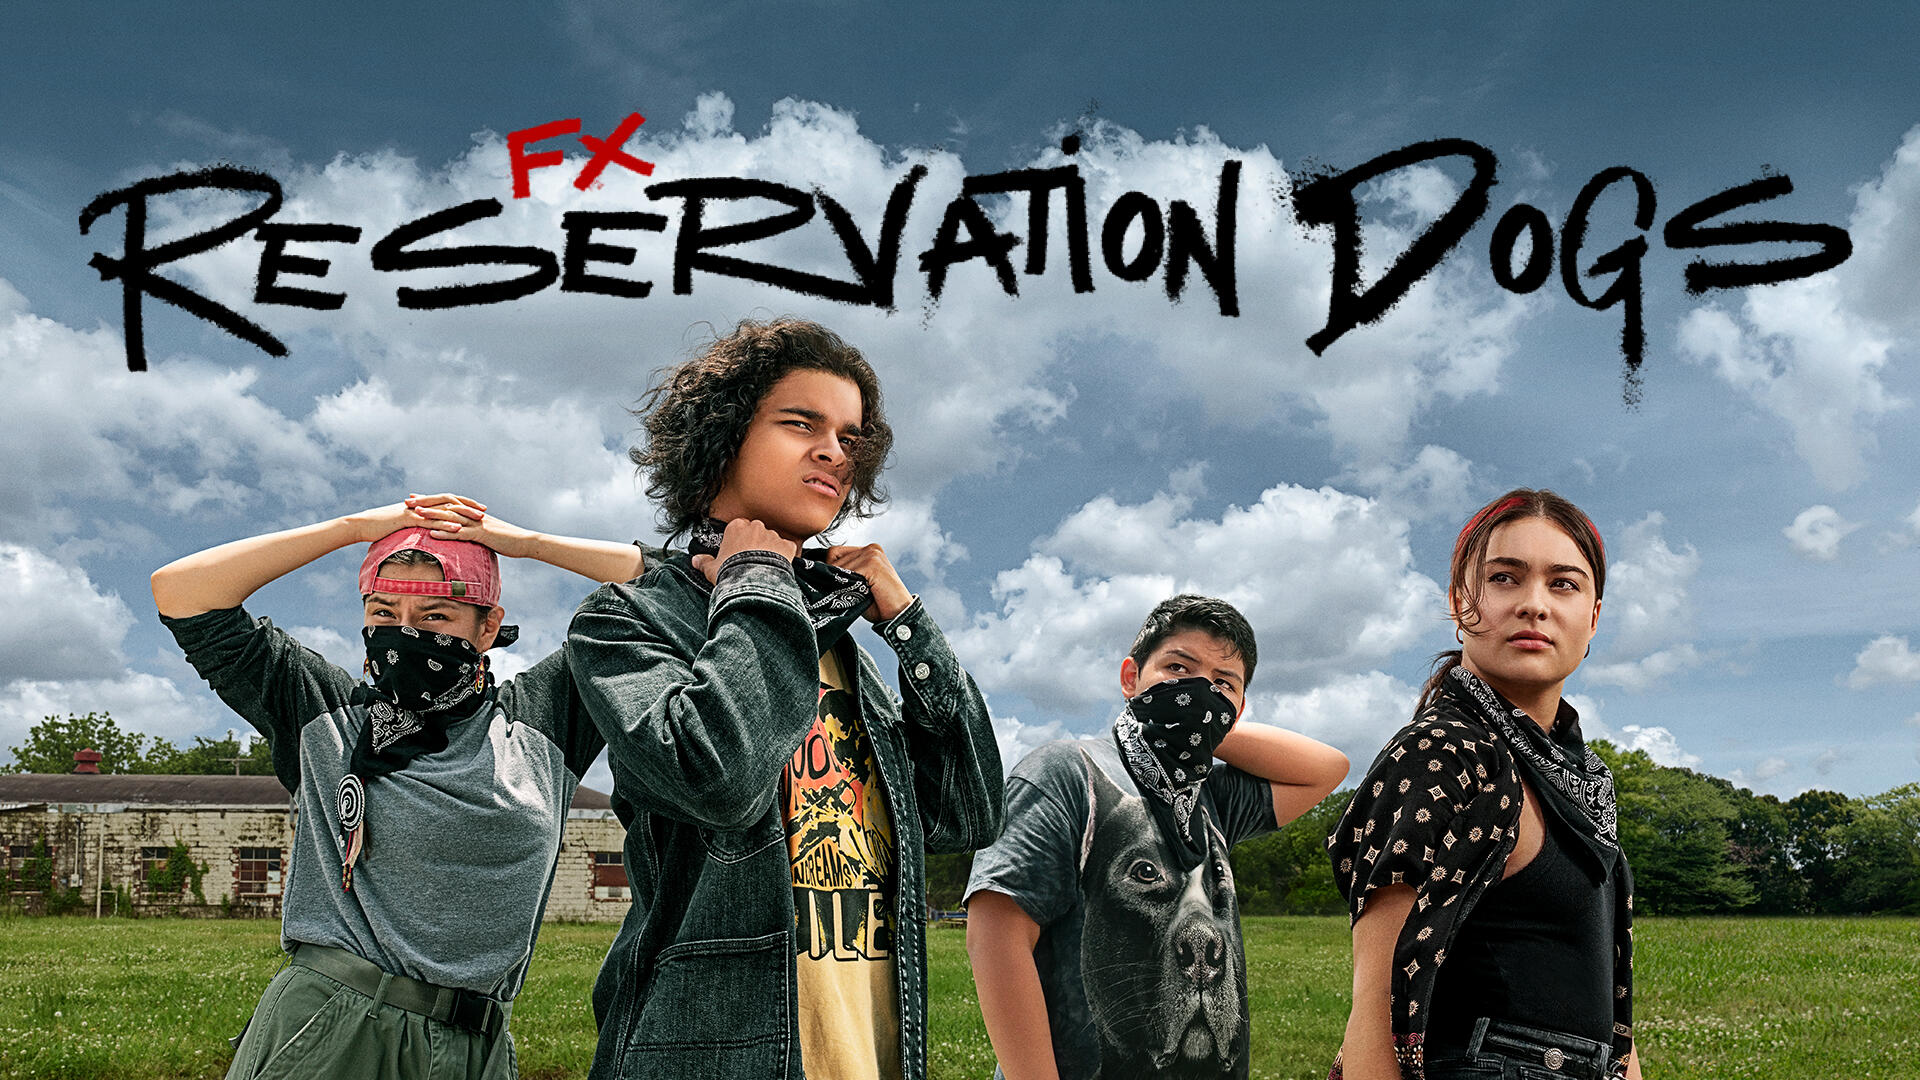 Reservation Dogs -- From Co-Creators and Executive Producers Sterlin Harjo and Taika Waititi, Reservation Dogs is a half-hour comedy that follows the exploits of four Indigenous teenagers in rural Oklahoma who steal, rob and save in order to get to the exotic, mysterious and faraway land of California. Bear (D'Pharaoh Woon-A-Tai), Elora (Devery Jacobs), Willie (Paulina Alexis) and Cheese (Lane Factor), shown. (Photo Courtesy of FX on Hulu)